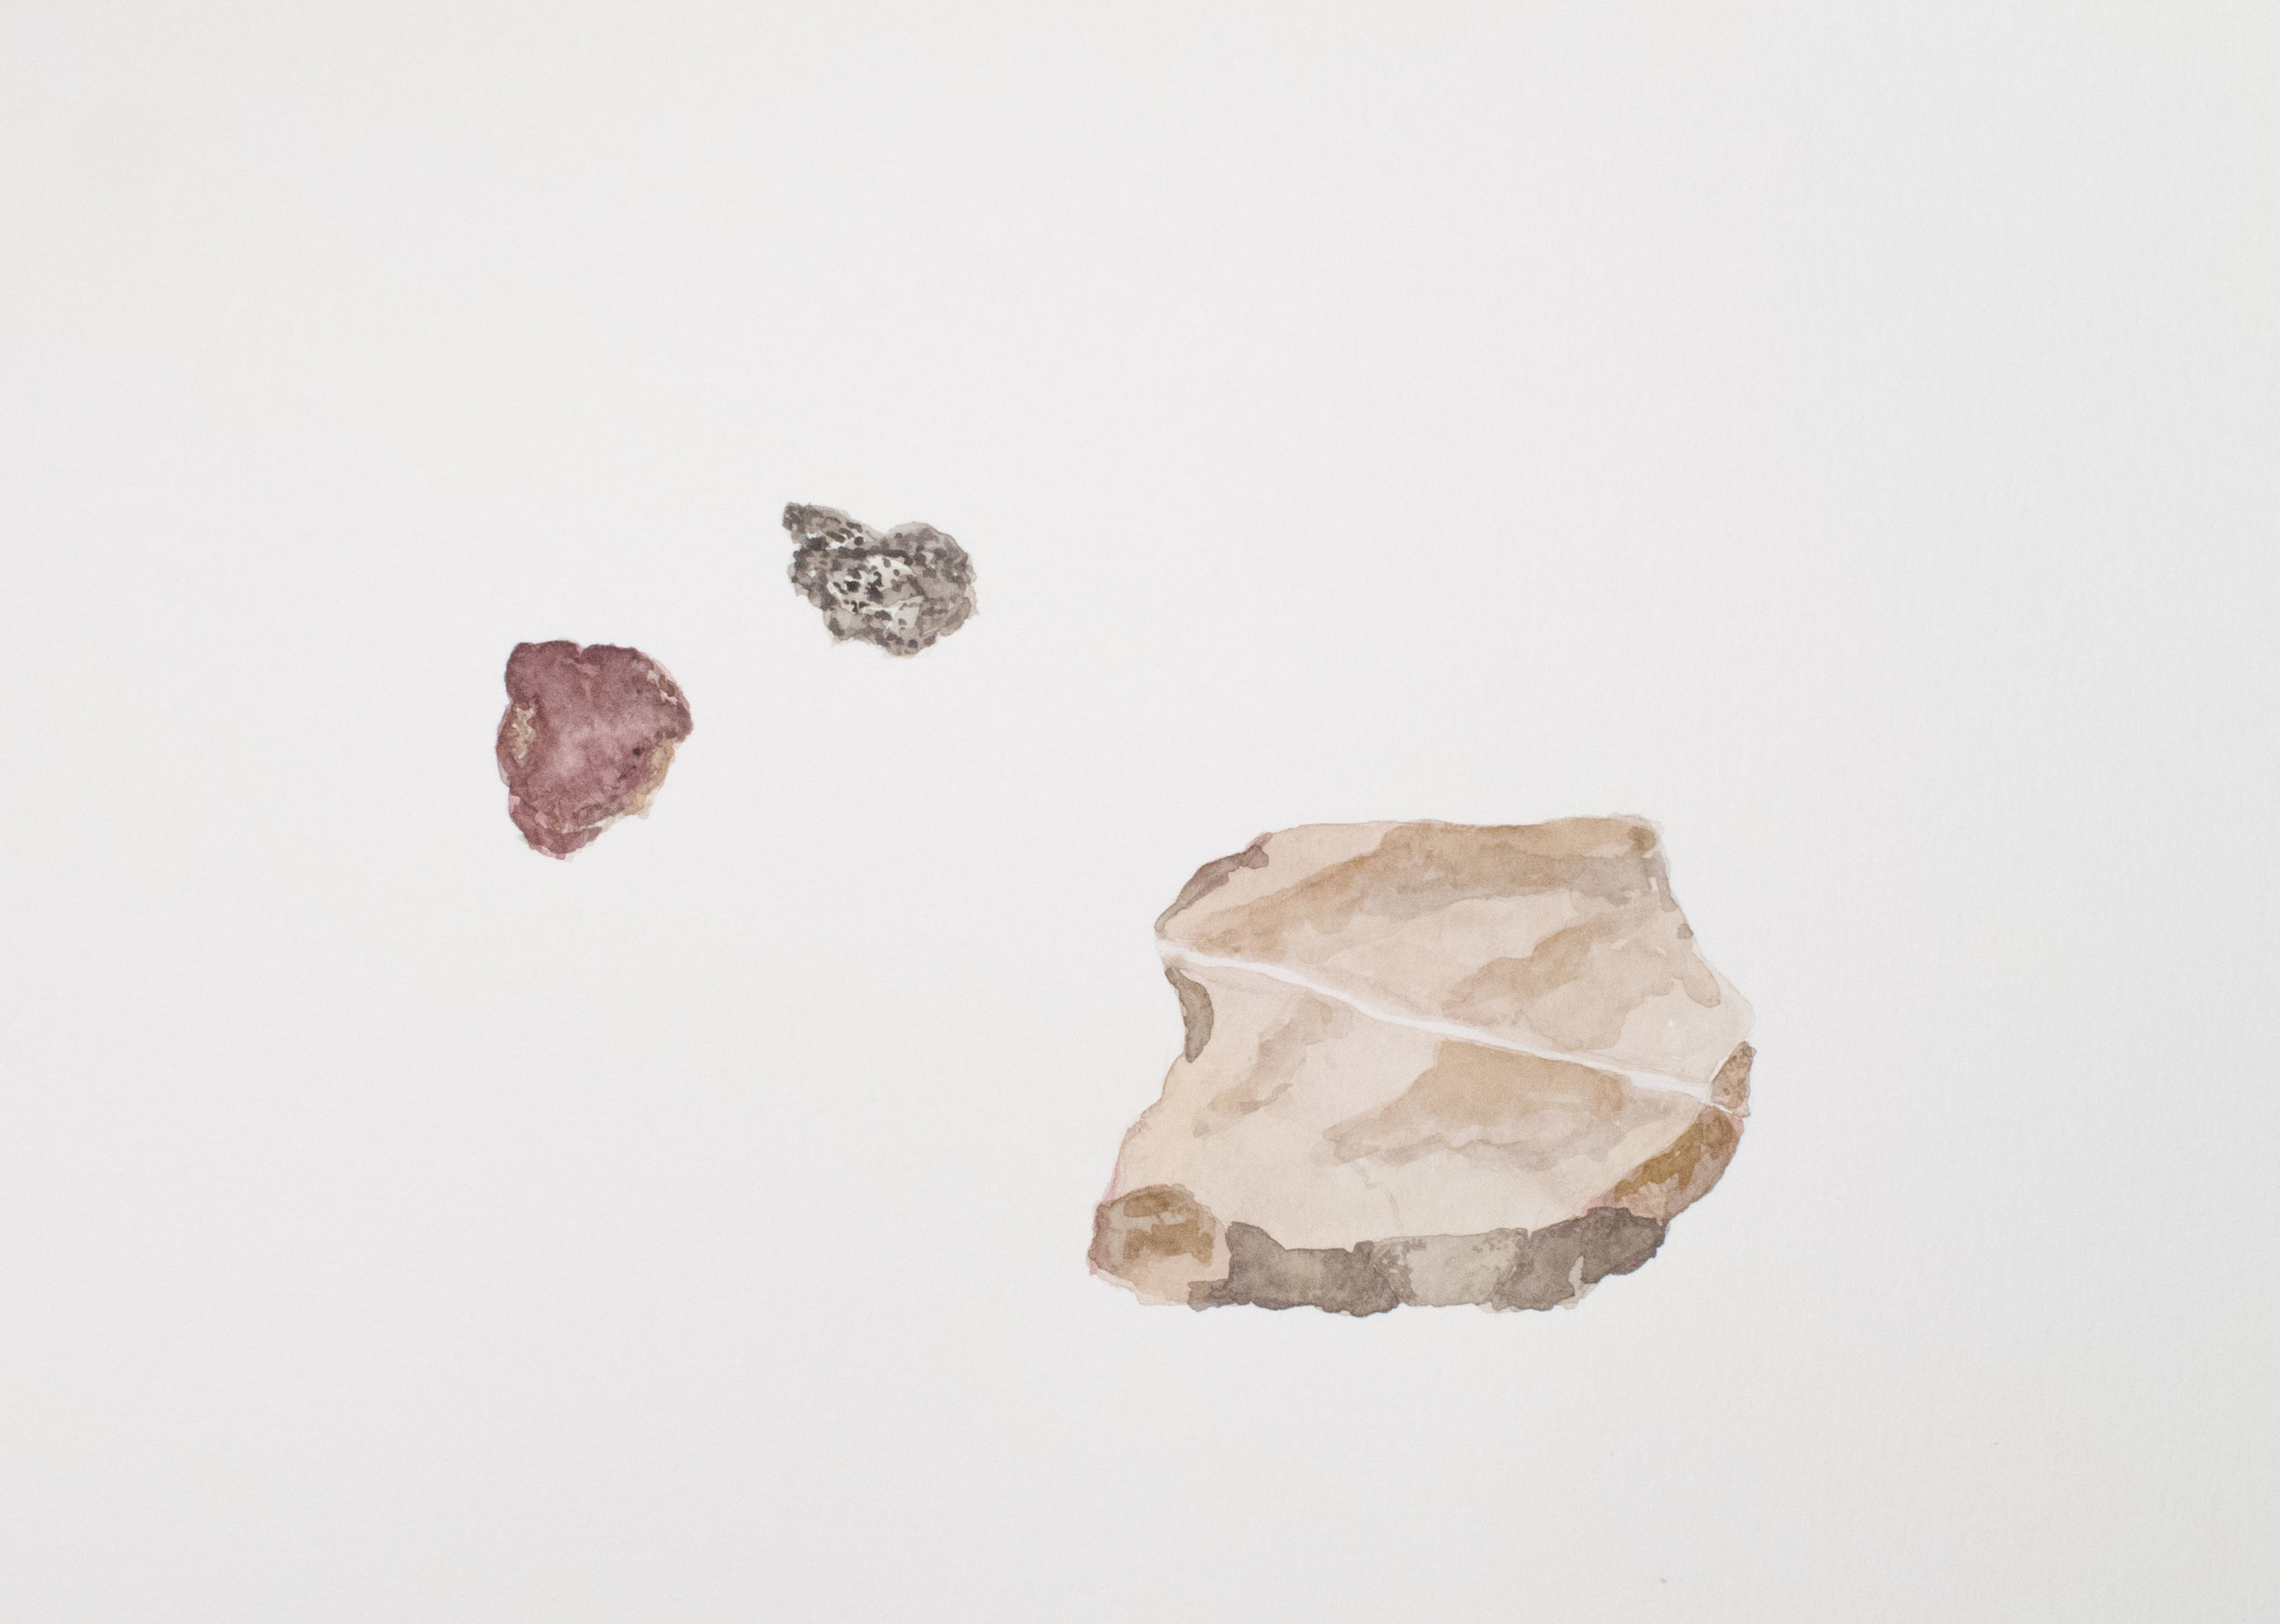 A Slice of Stone watercolor 16 x 20 inches ASC 129G